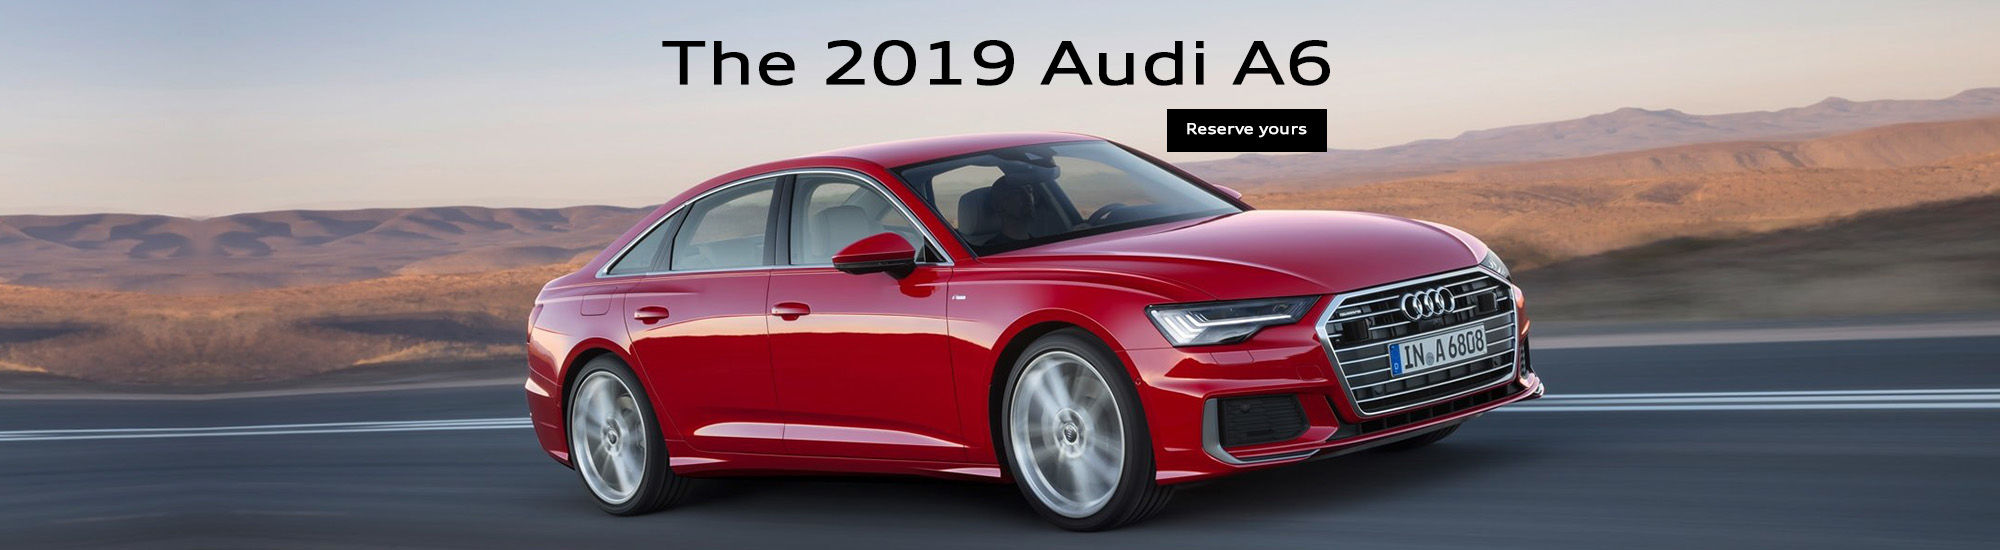 The 2019 Audi A6